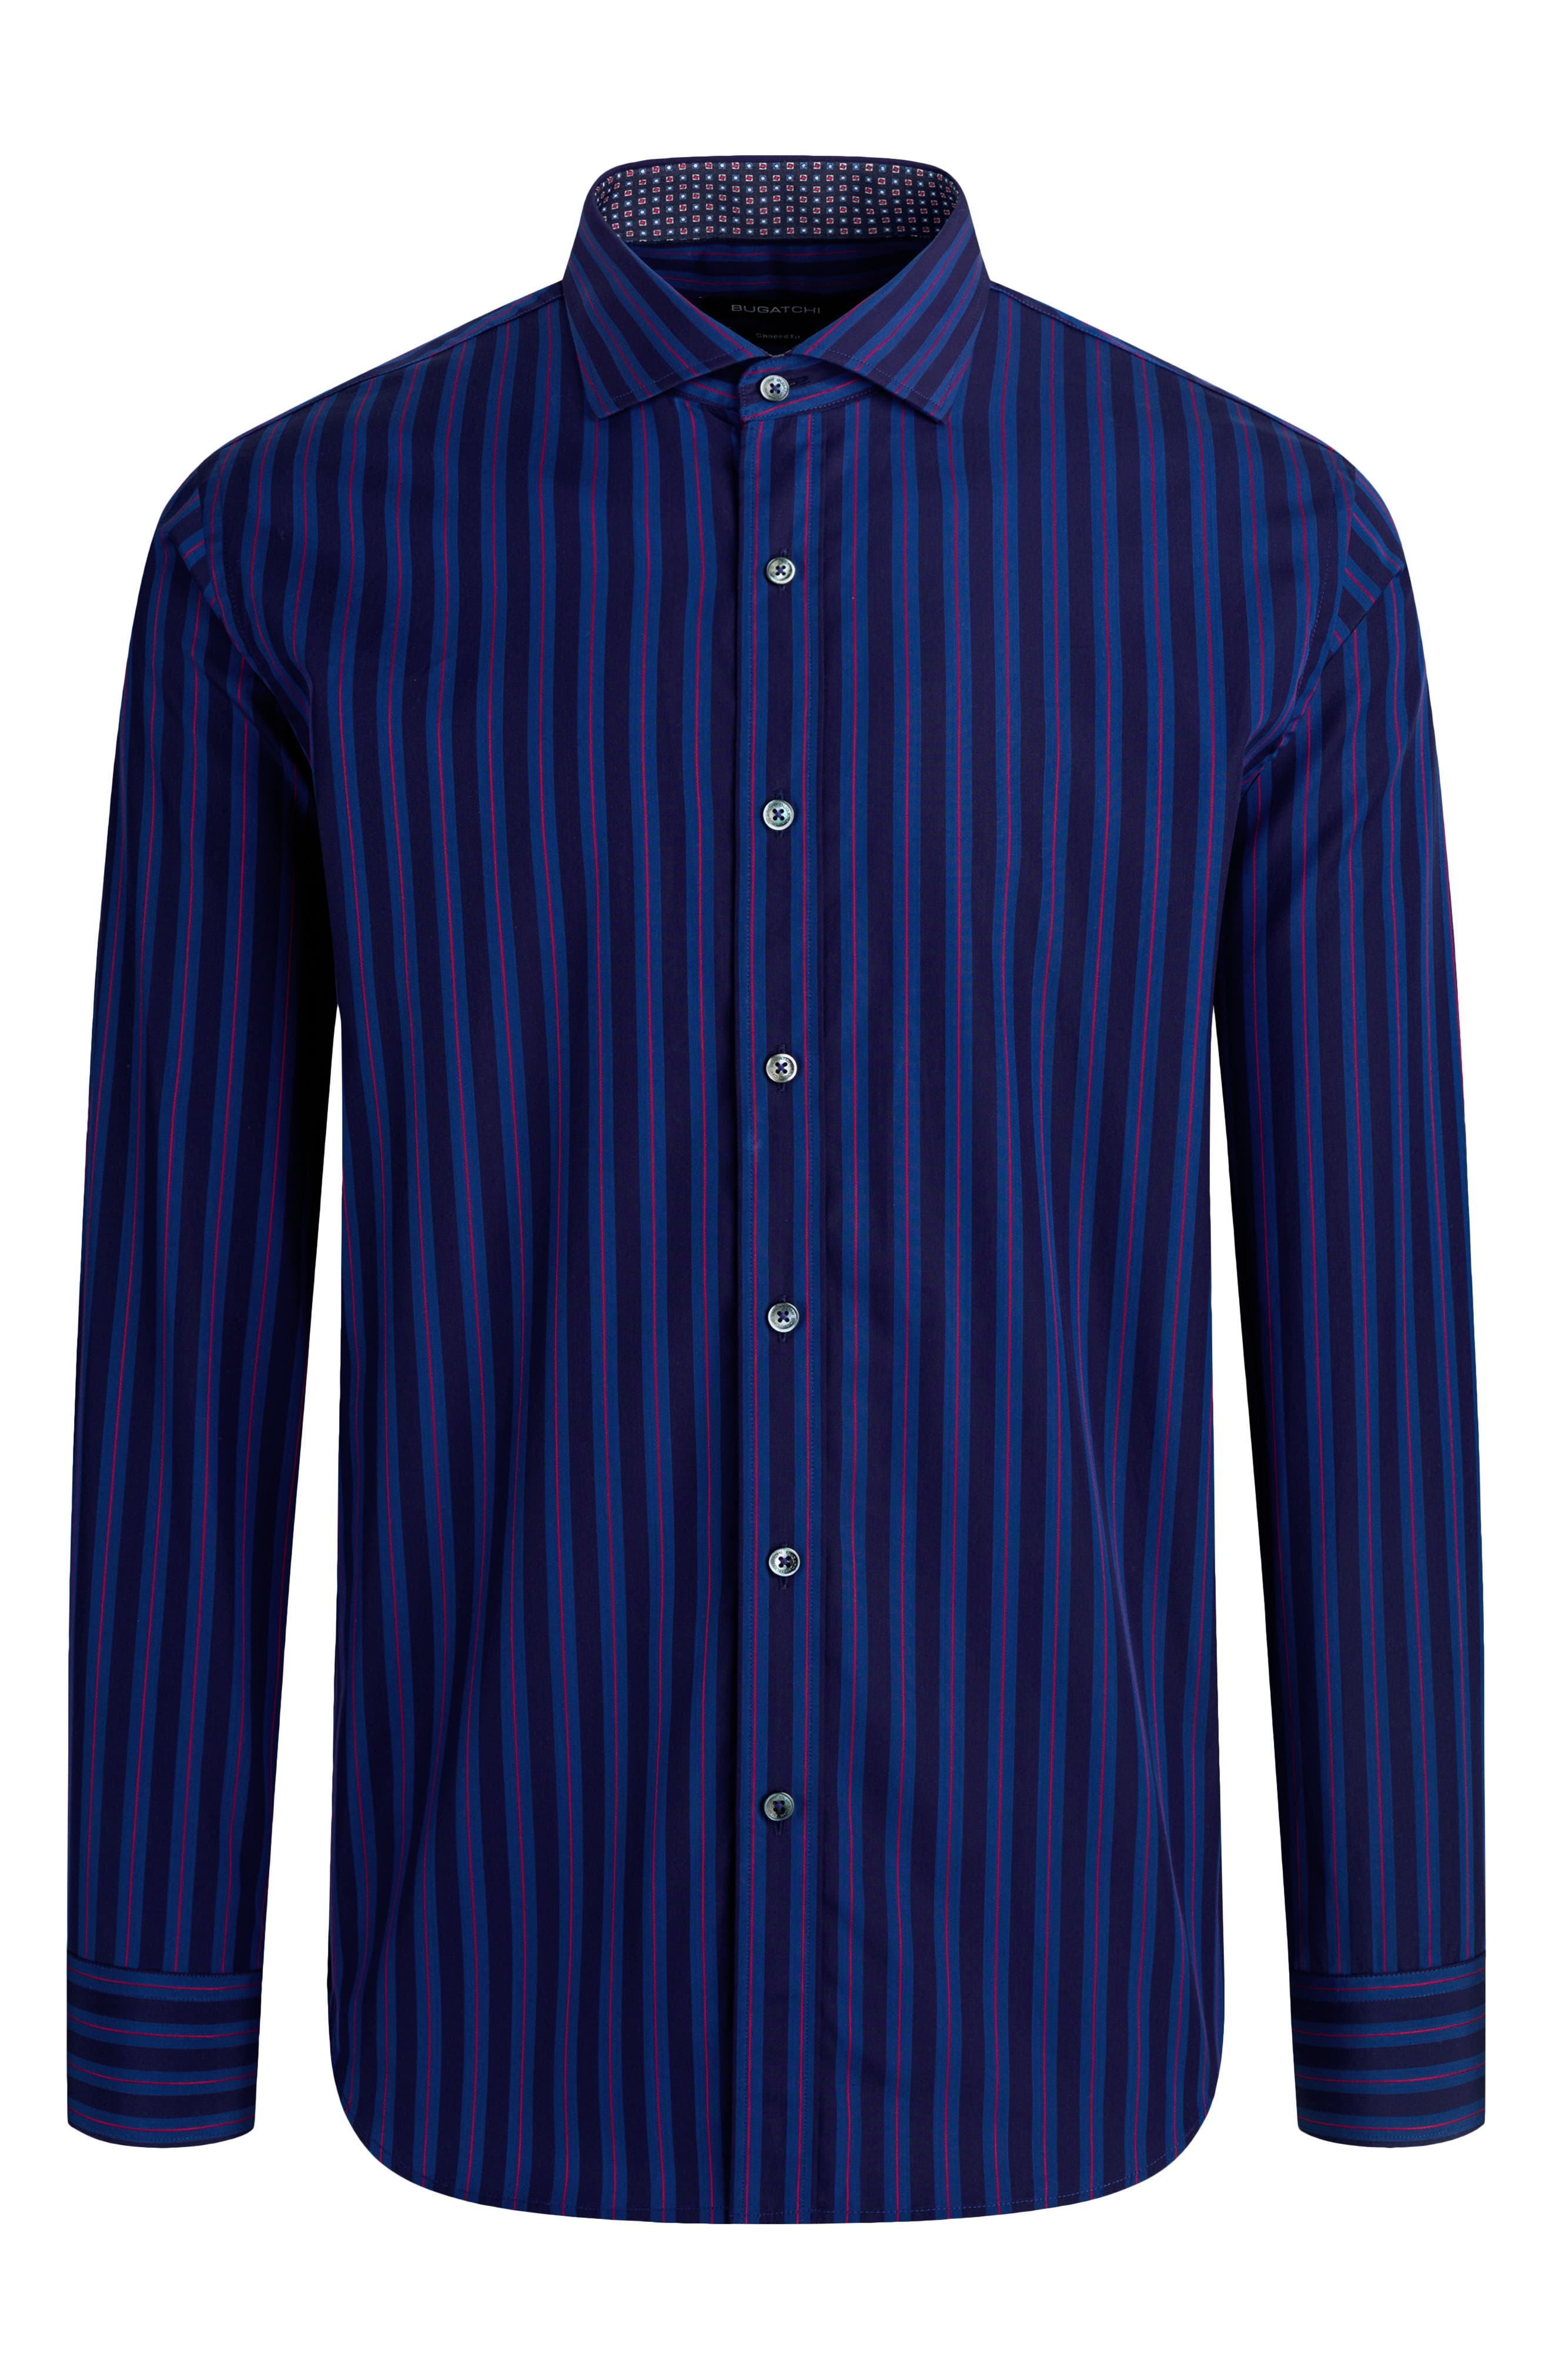 A handsome spread-collar shirt is shaped from soft Italian cotton in a cut that can be worn tucked or untucked. Style Name: Bugatchi Classic Fit Stripe Button-Up Shirt. Style Number: 6129634. Available in stores.